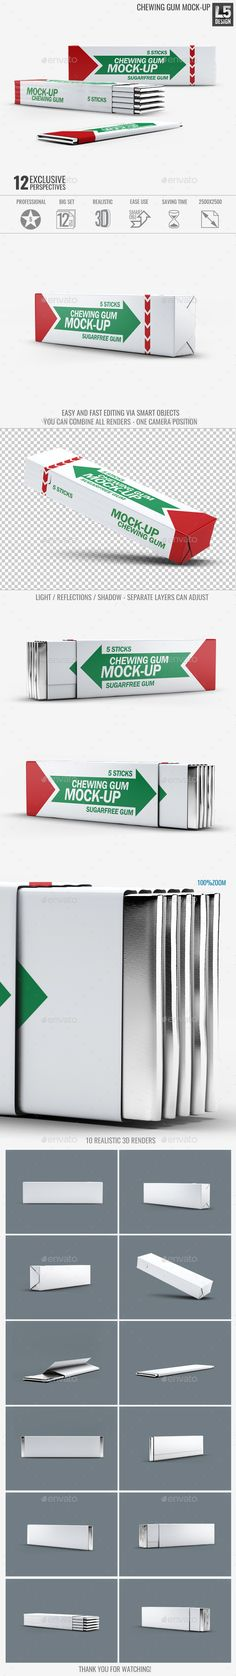 Chewing Gum Mock-Up #PSD • Click here to download ! http://graphicriver.net/item/chewing-gum-mockup-v2/15728632?ref=pxcr